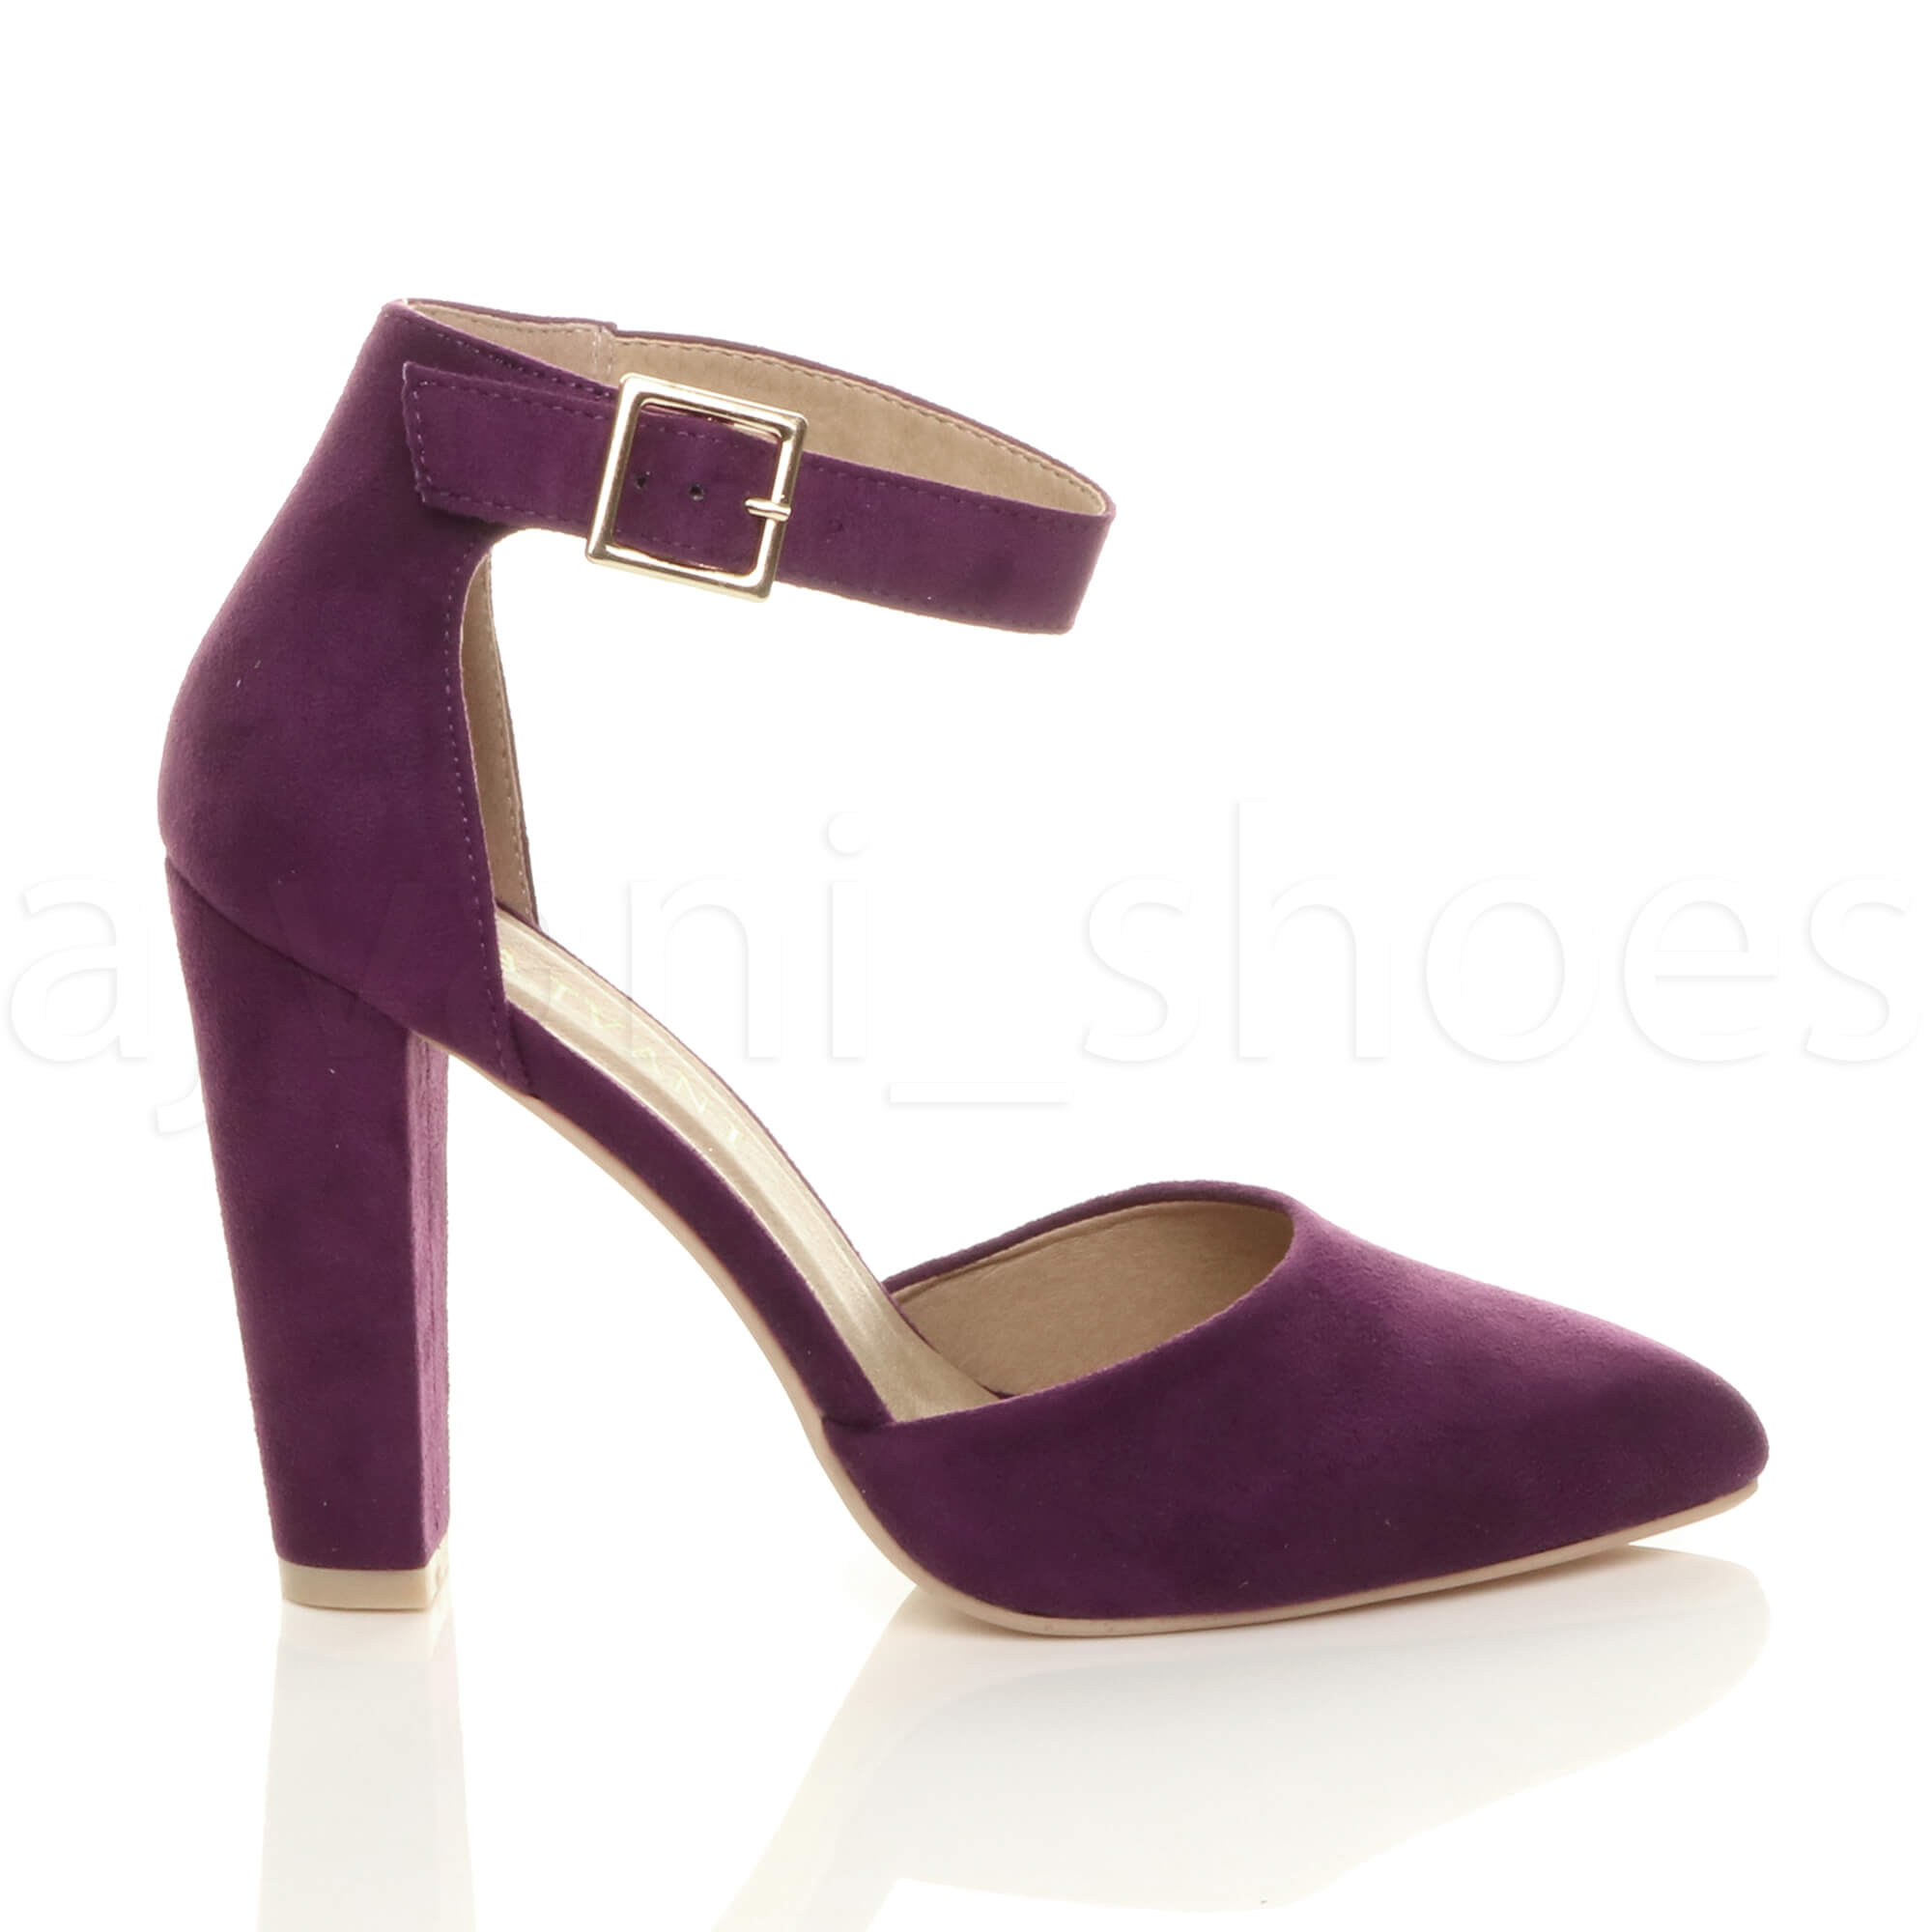 WOMENS-LADIES-HIGH-BLOCK-HEEL-ANKLE-STRAP-BUCKLE-POINTED-COURT-SHOES-SIZE thumbnail 122